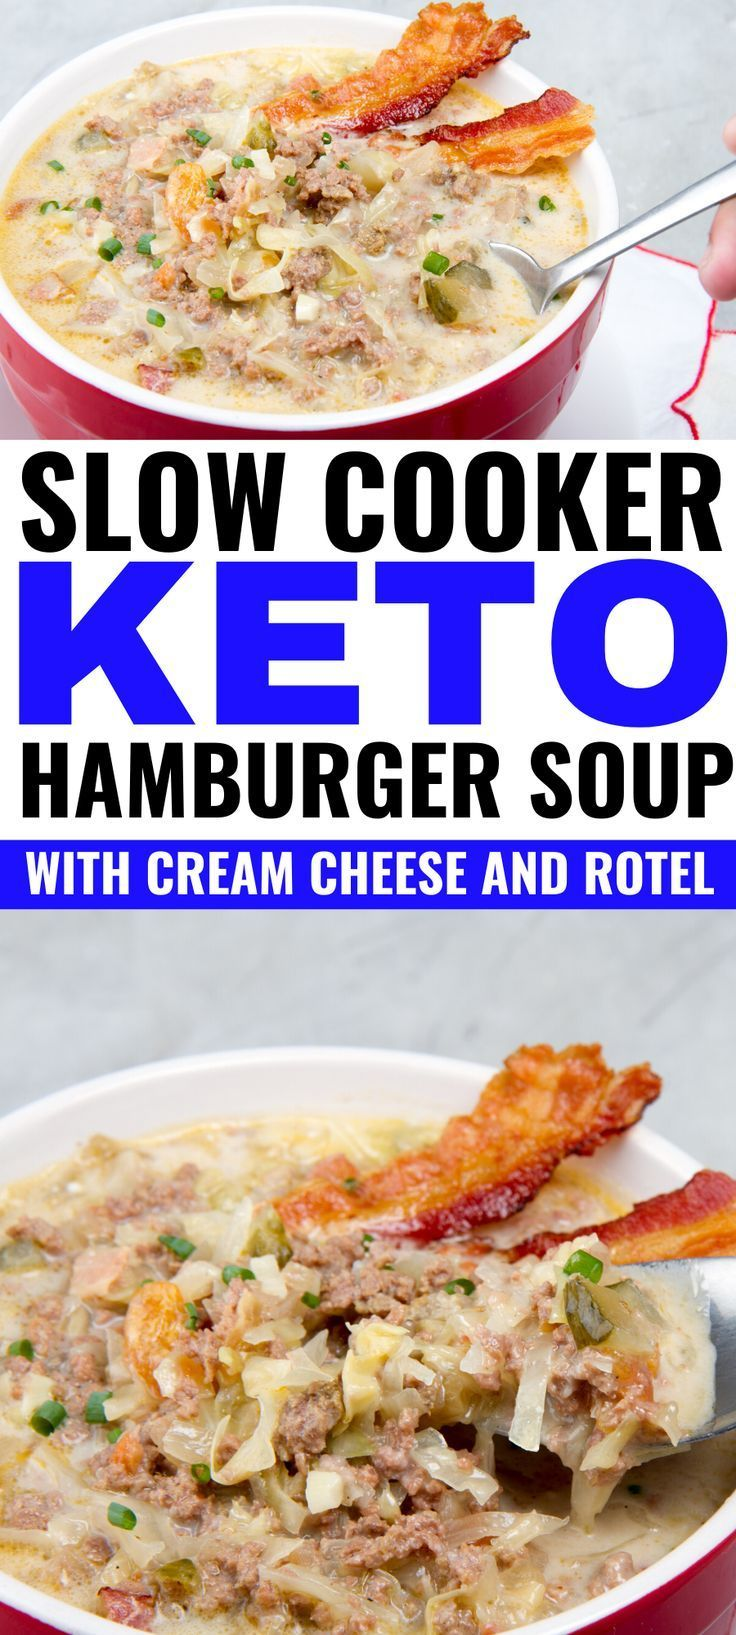 Slow Cooker Keto Hamburger Soup With Cream Cheese And Rotel Oh So Foodie In 2020 Hamburger Soup Soup With Ground Beef Healthy Recipes